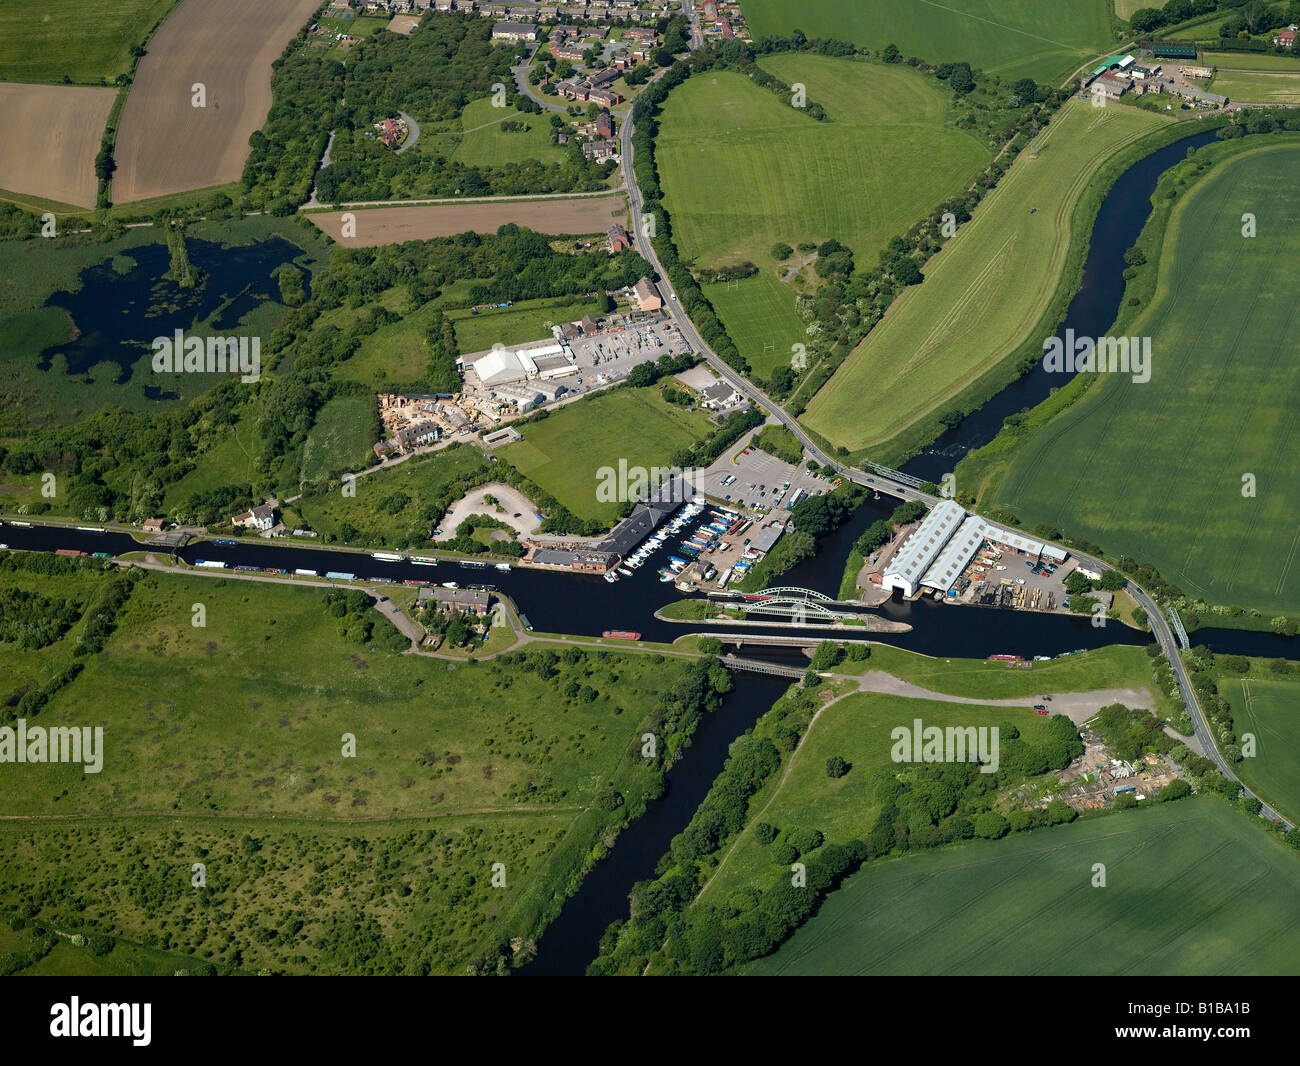 Canal and Aquaduct from the Air, Stanley Ferry, Wakefield, West Yorkshire, Northern England - Stock Image